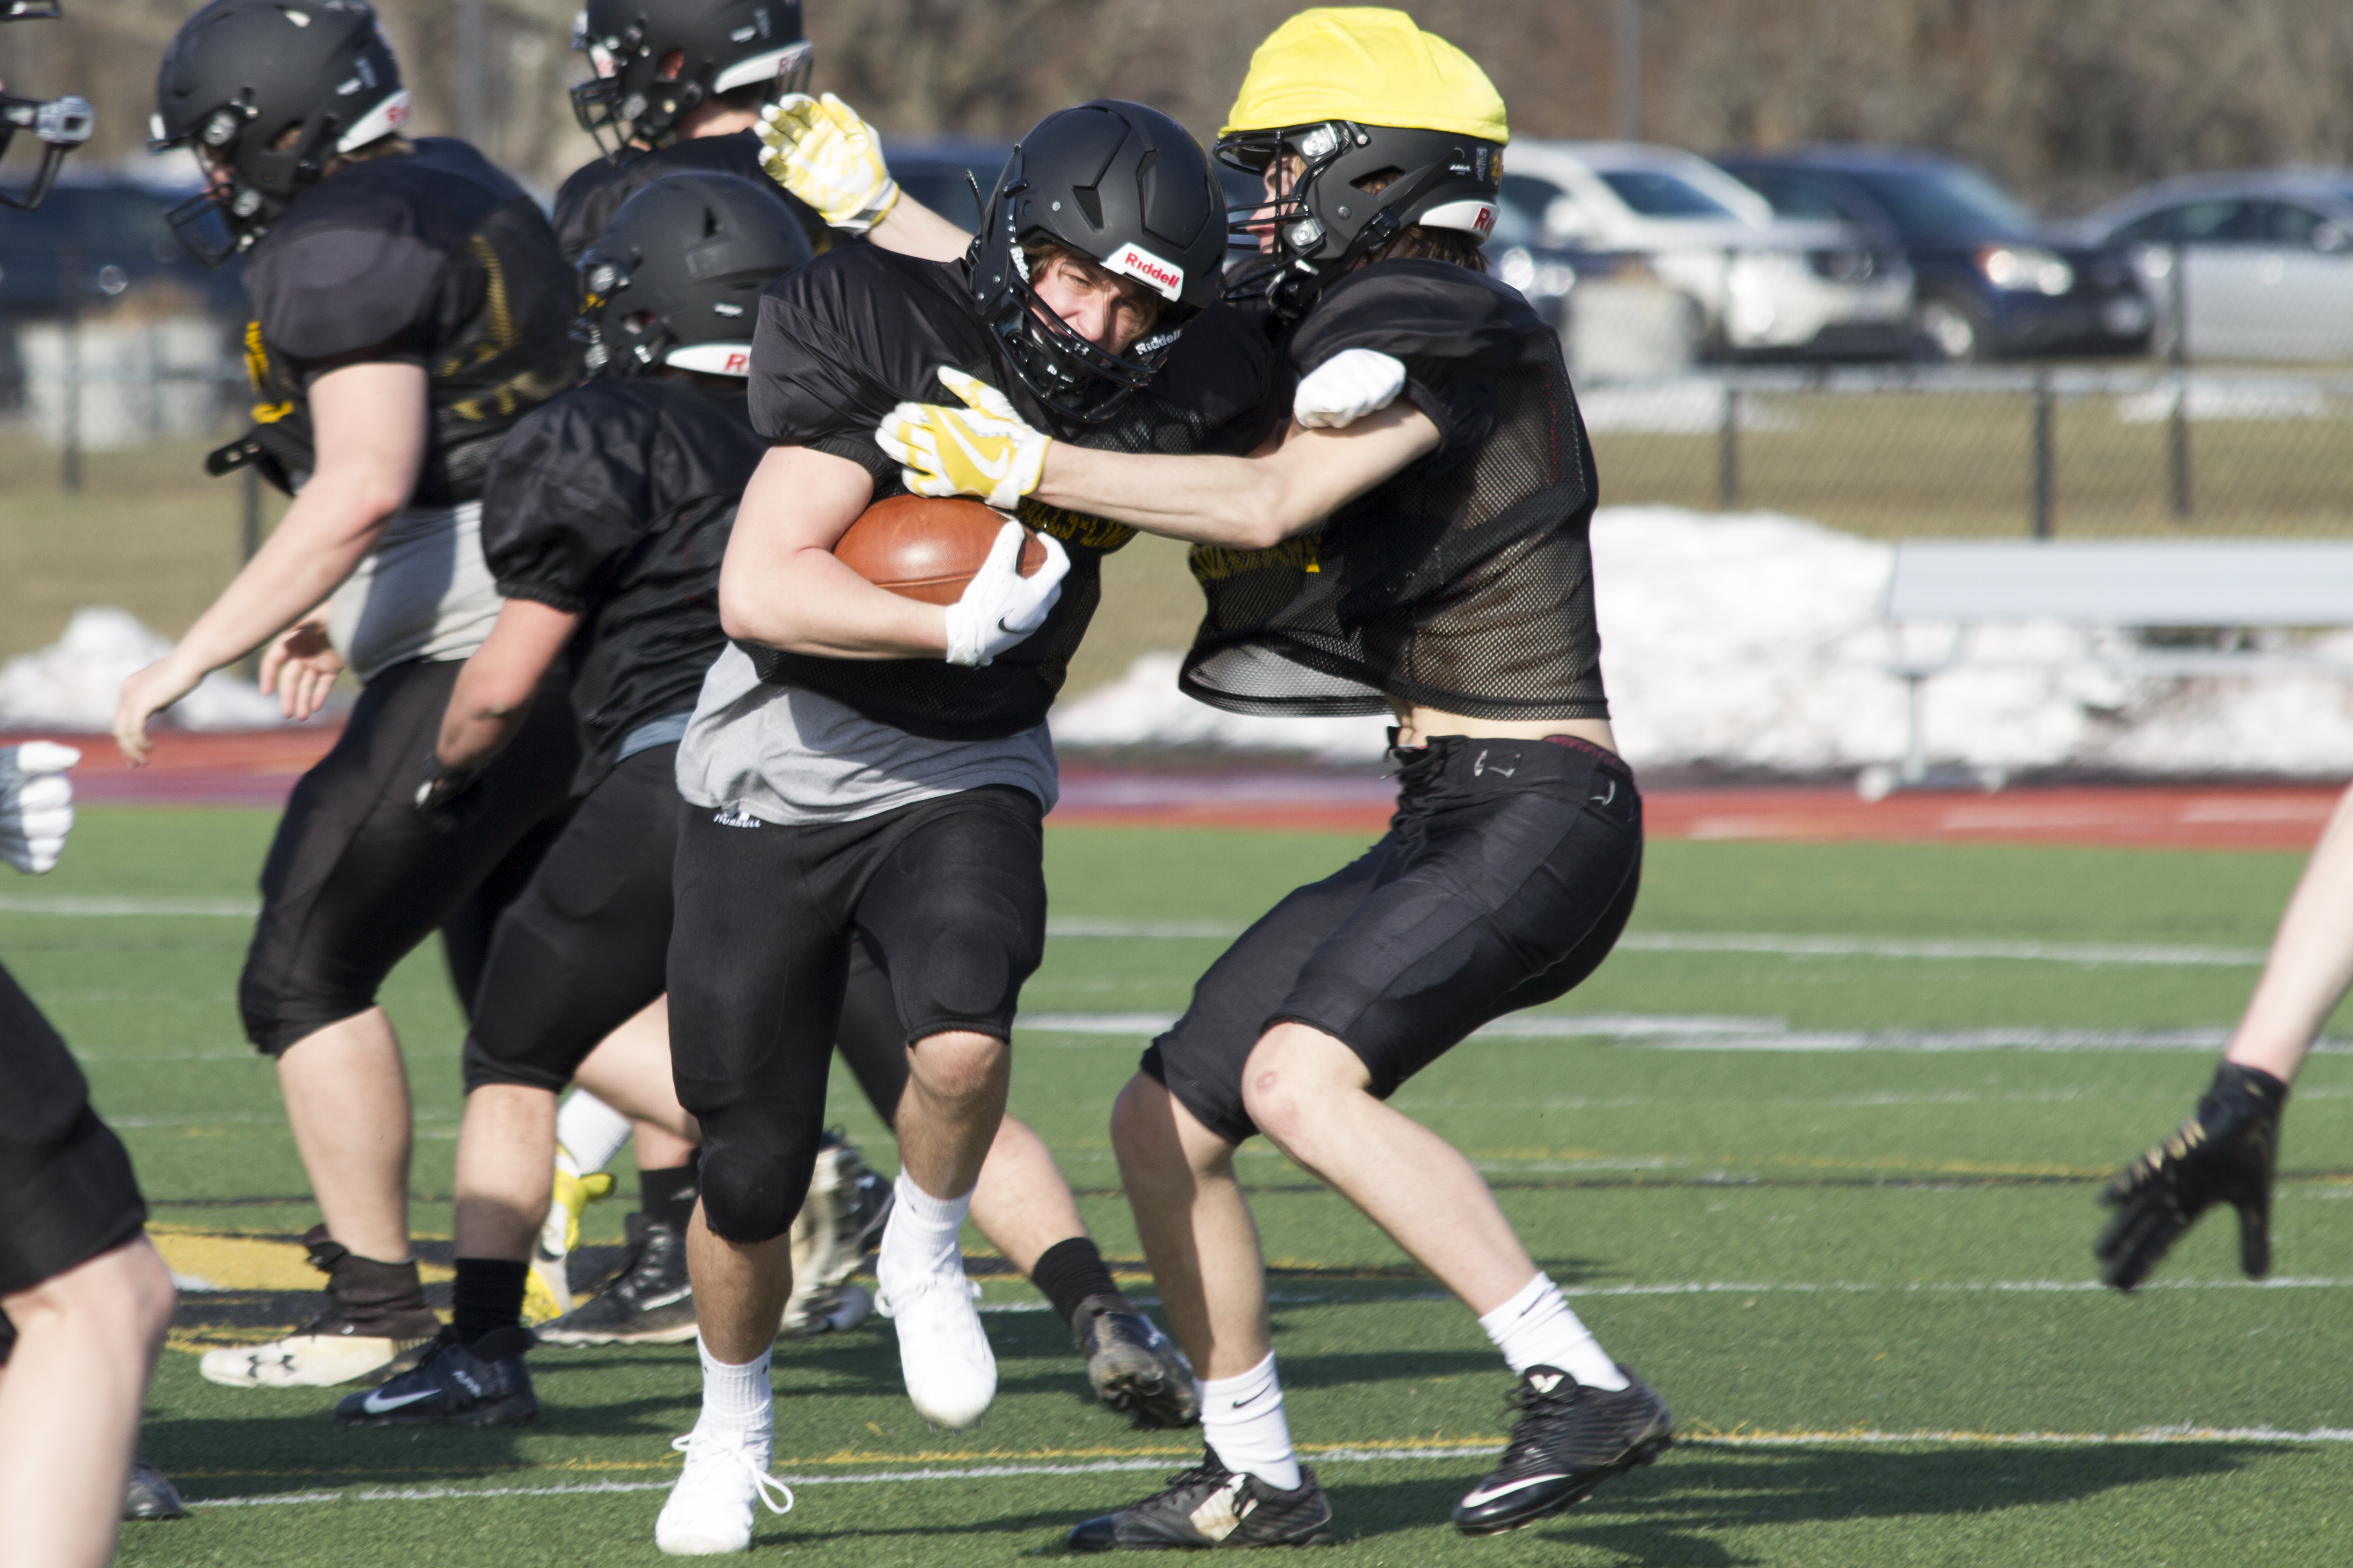 Unfinished Business: HF-L Football poised to pick up where it left off in 2019